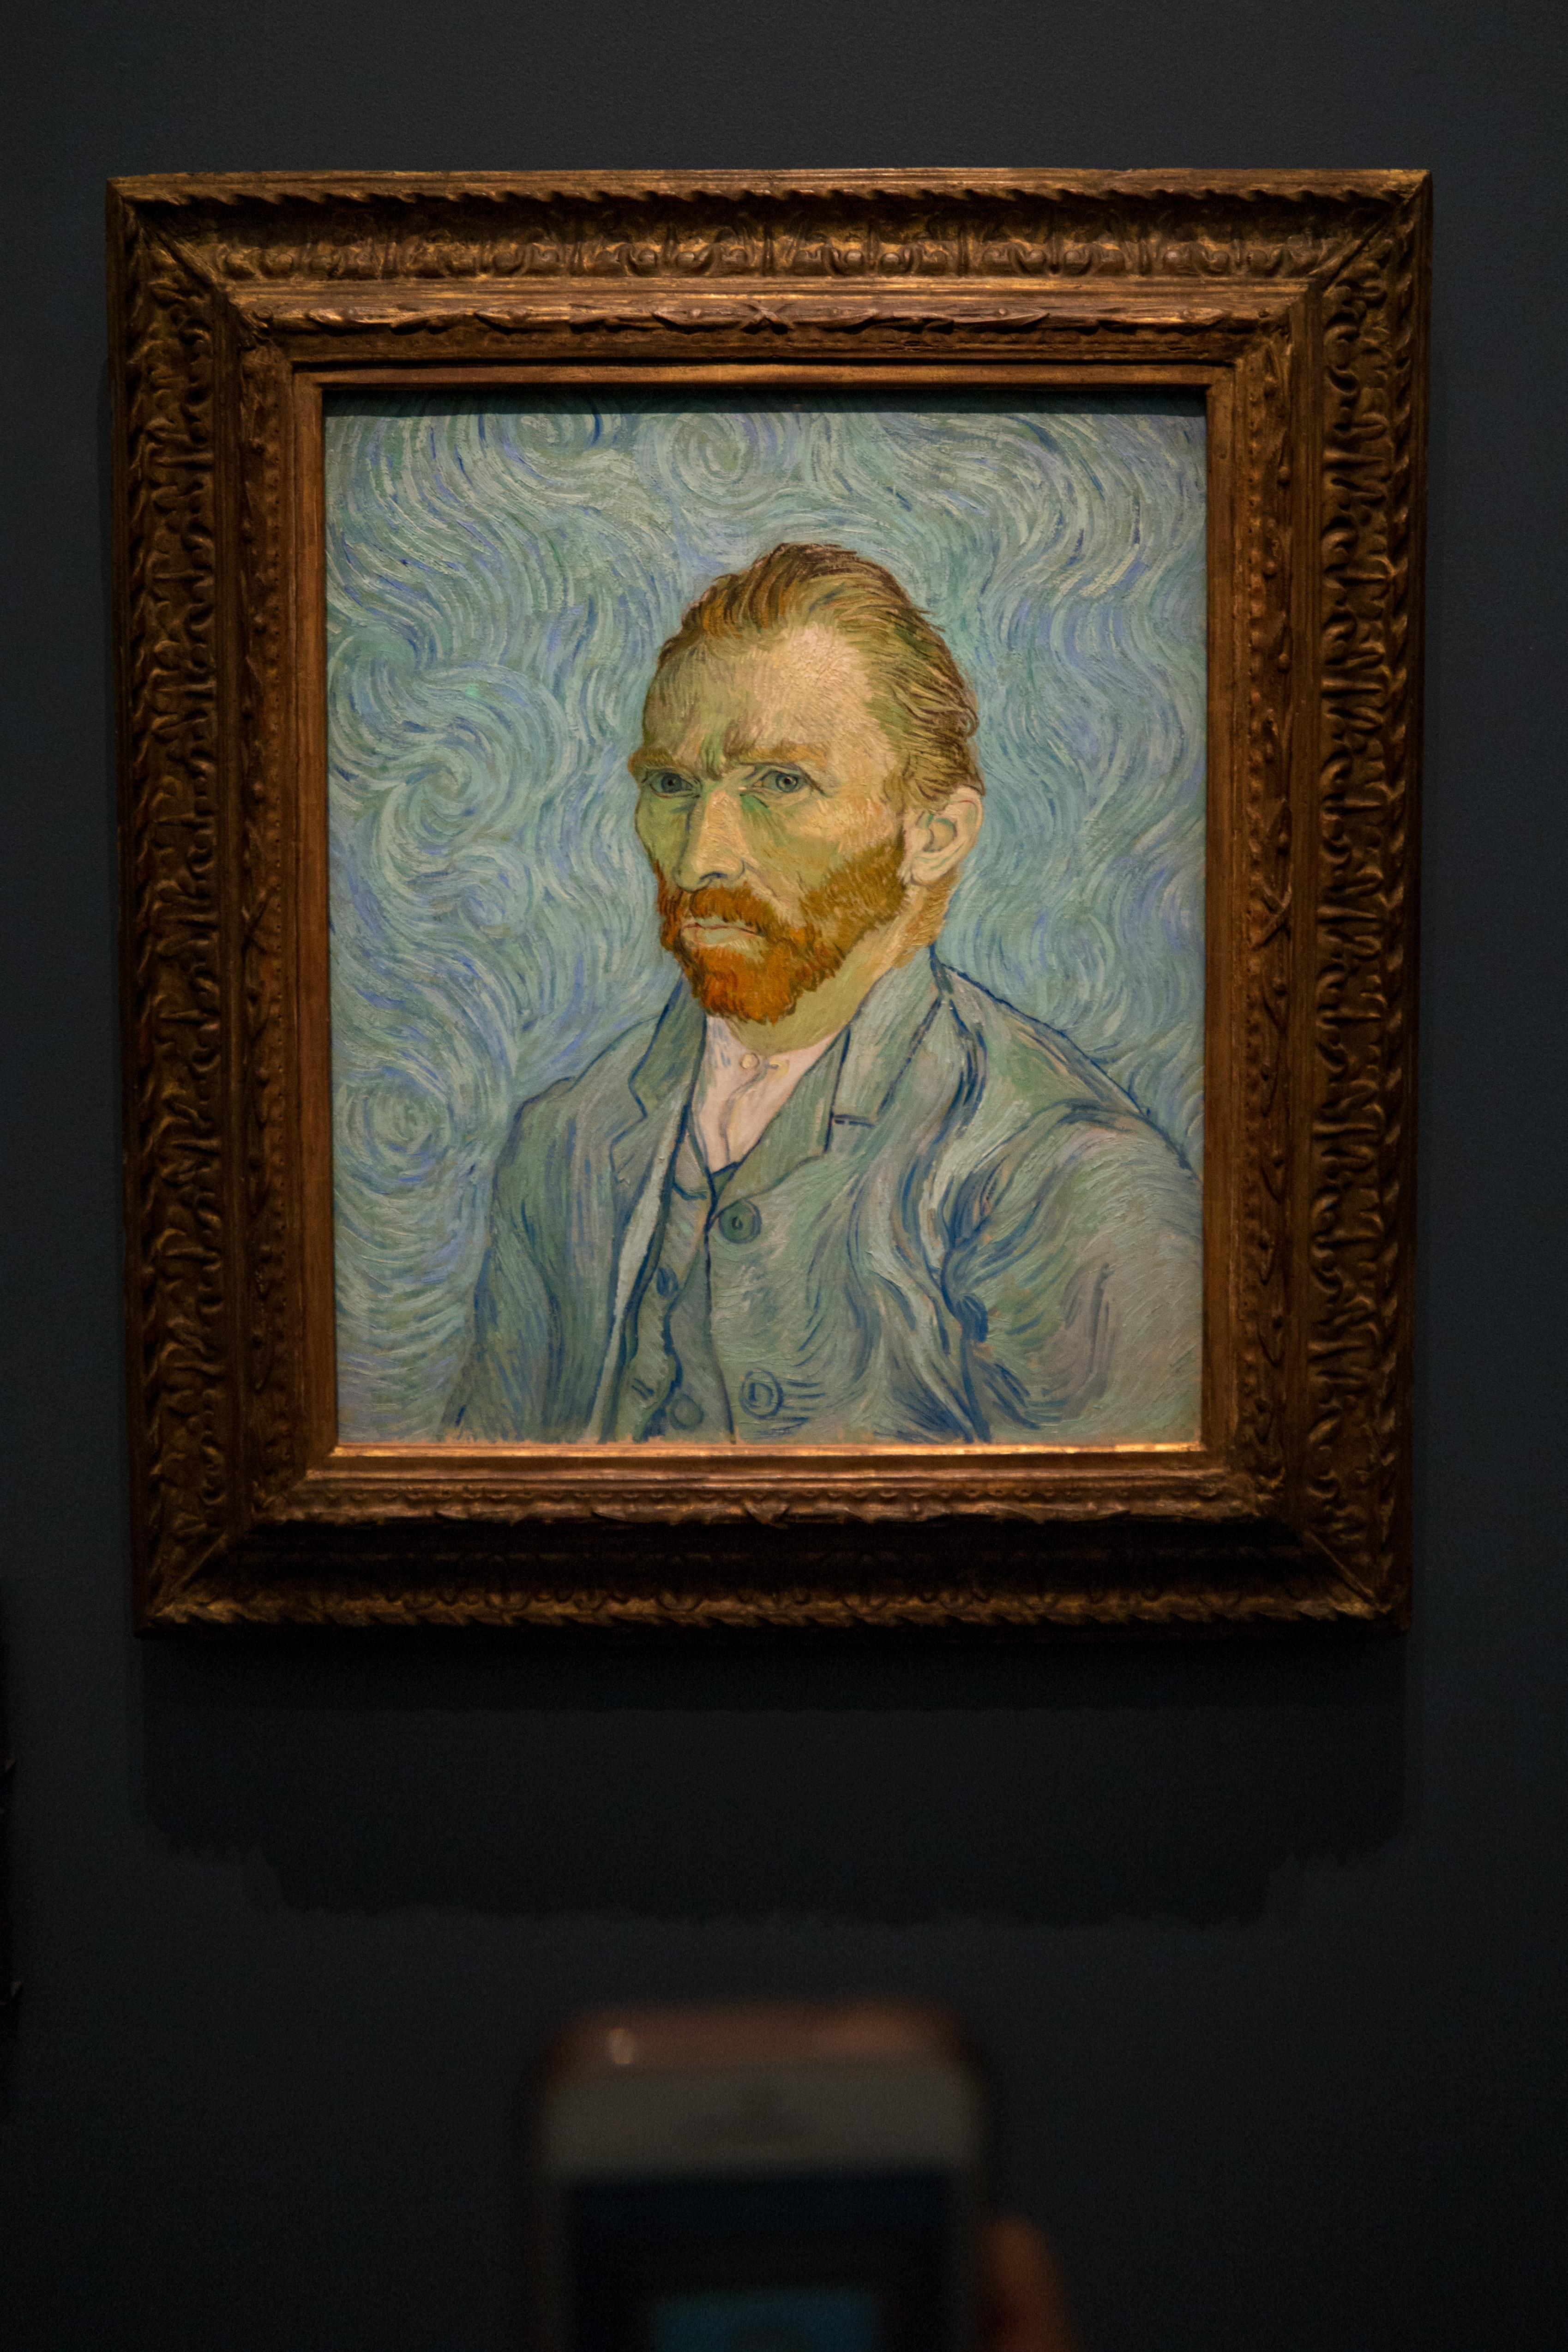 Musee D Orsay Van Gogh : musee, orsay, File:Vincent, Musee, D'Orsay, (35088515061).jpg, Wikimedia, Commons